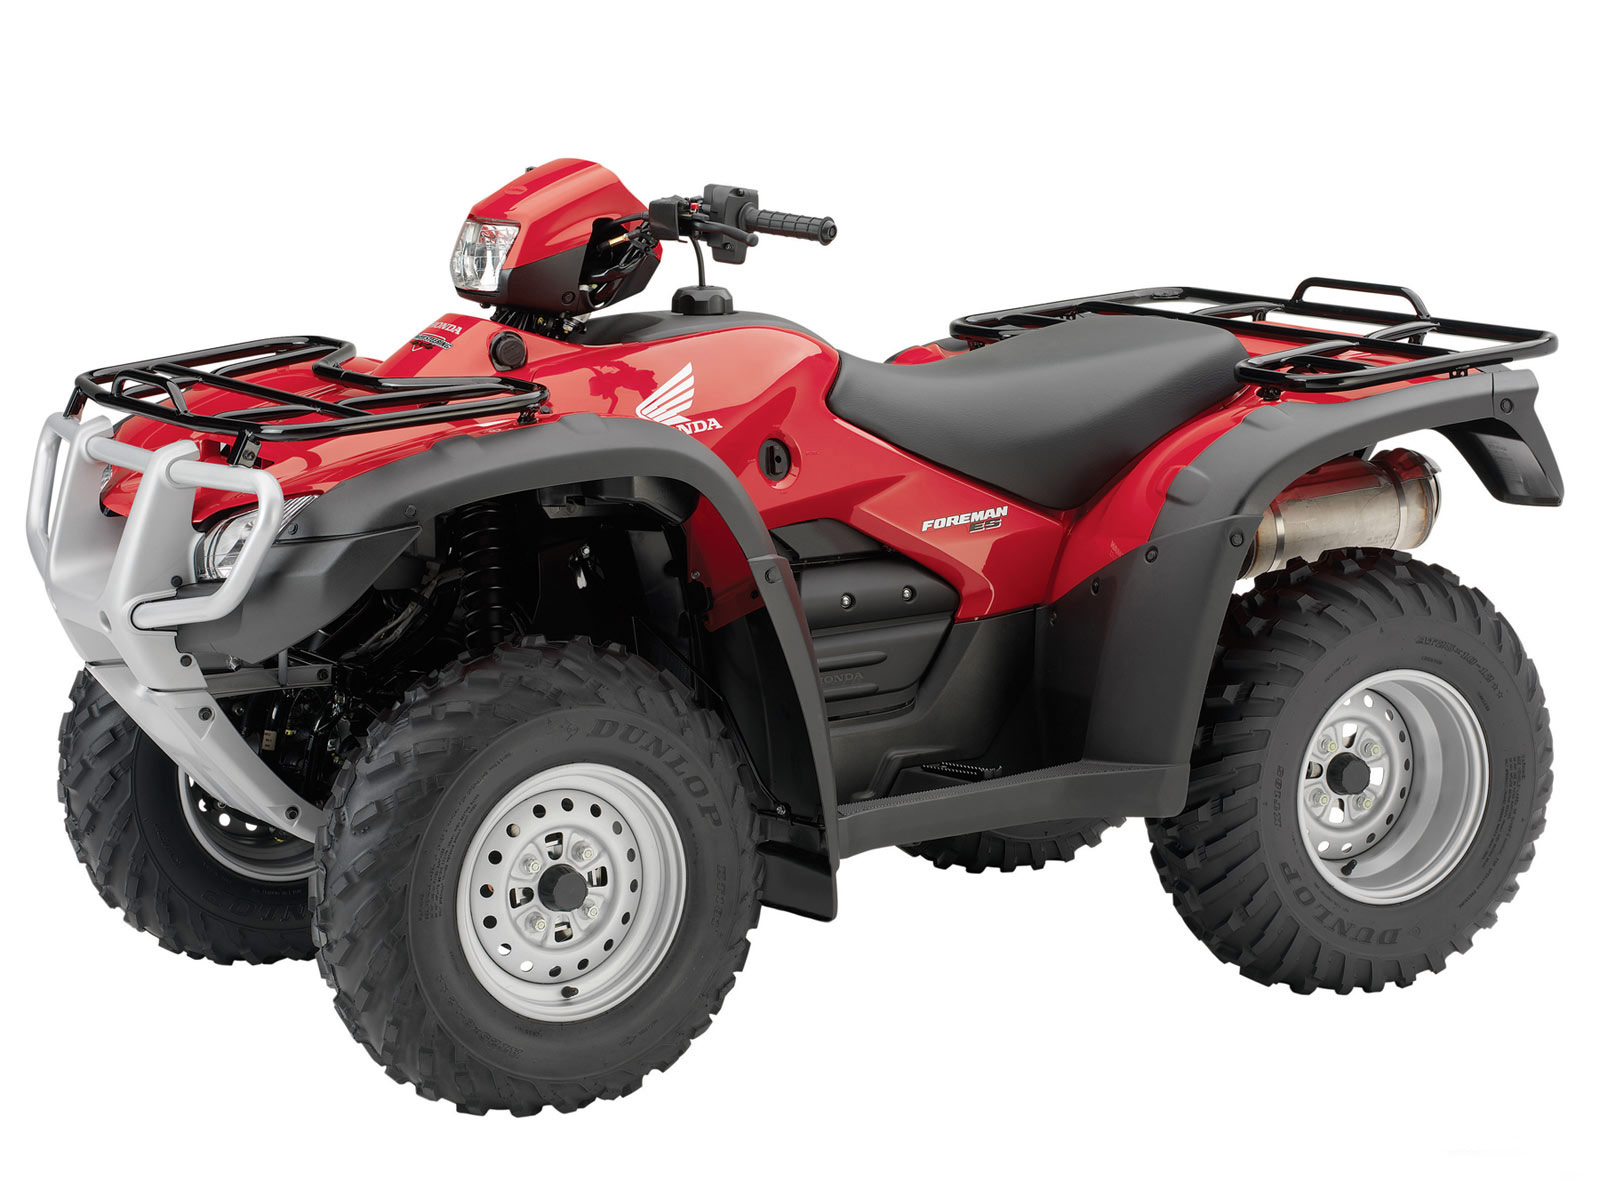 2007 honda atv fourtrax foreman pictures specs insurance